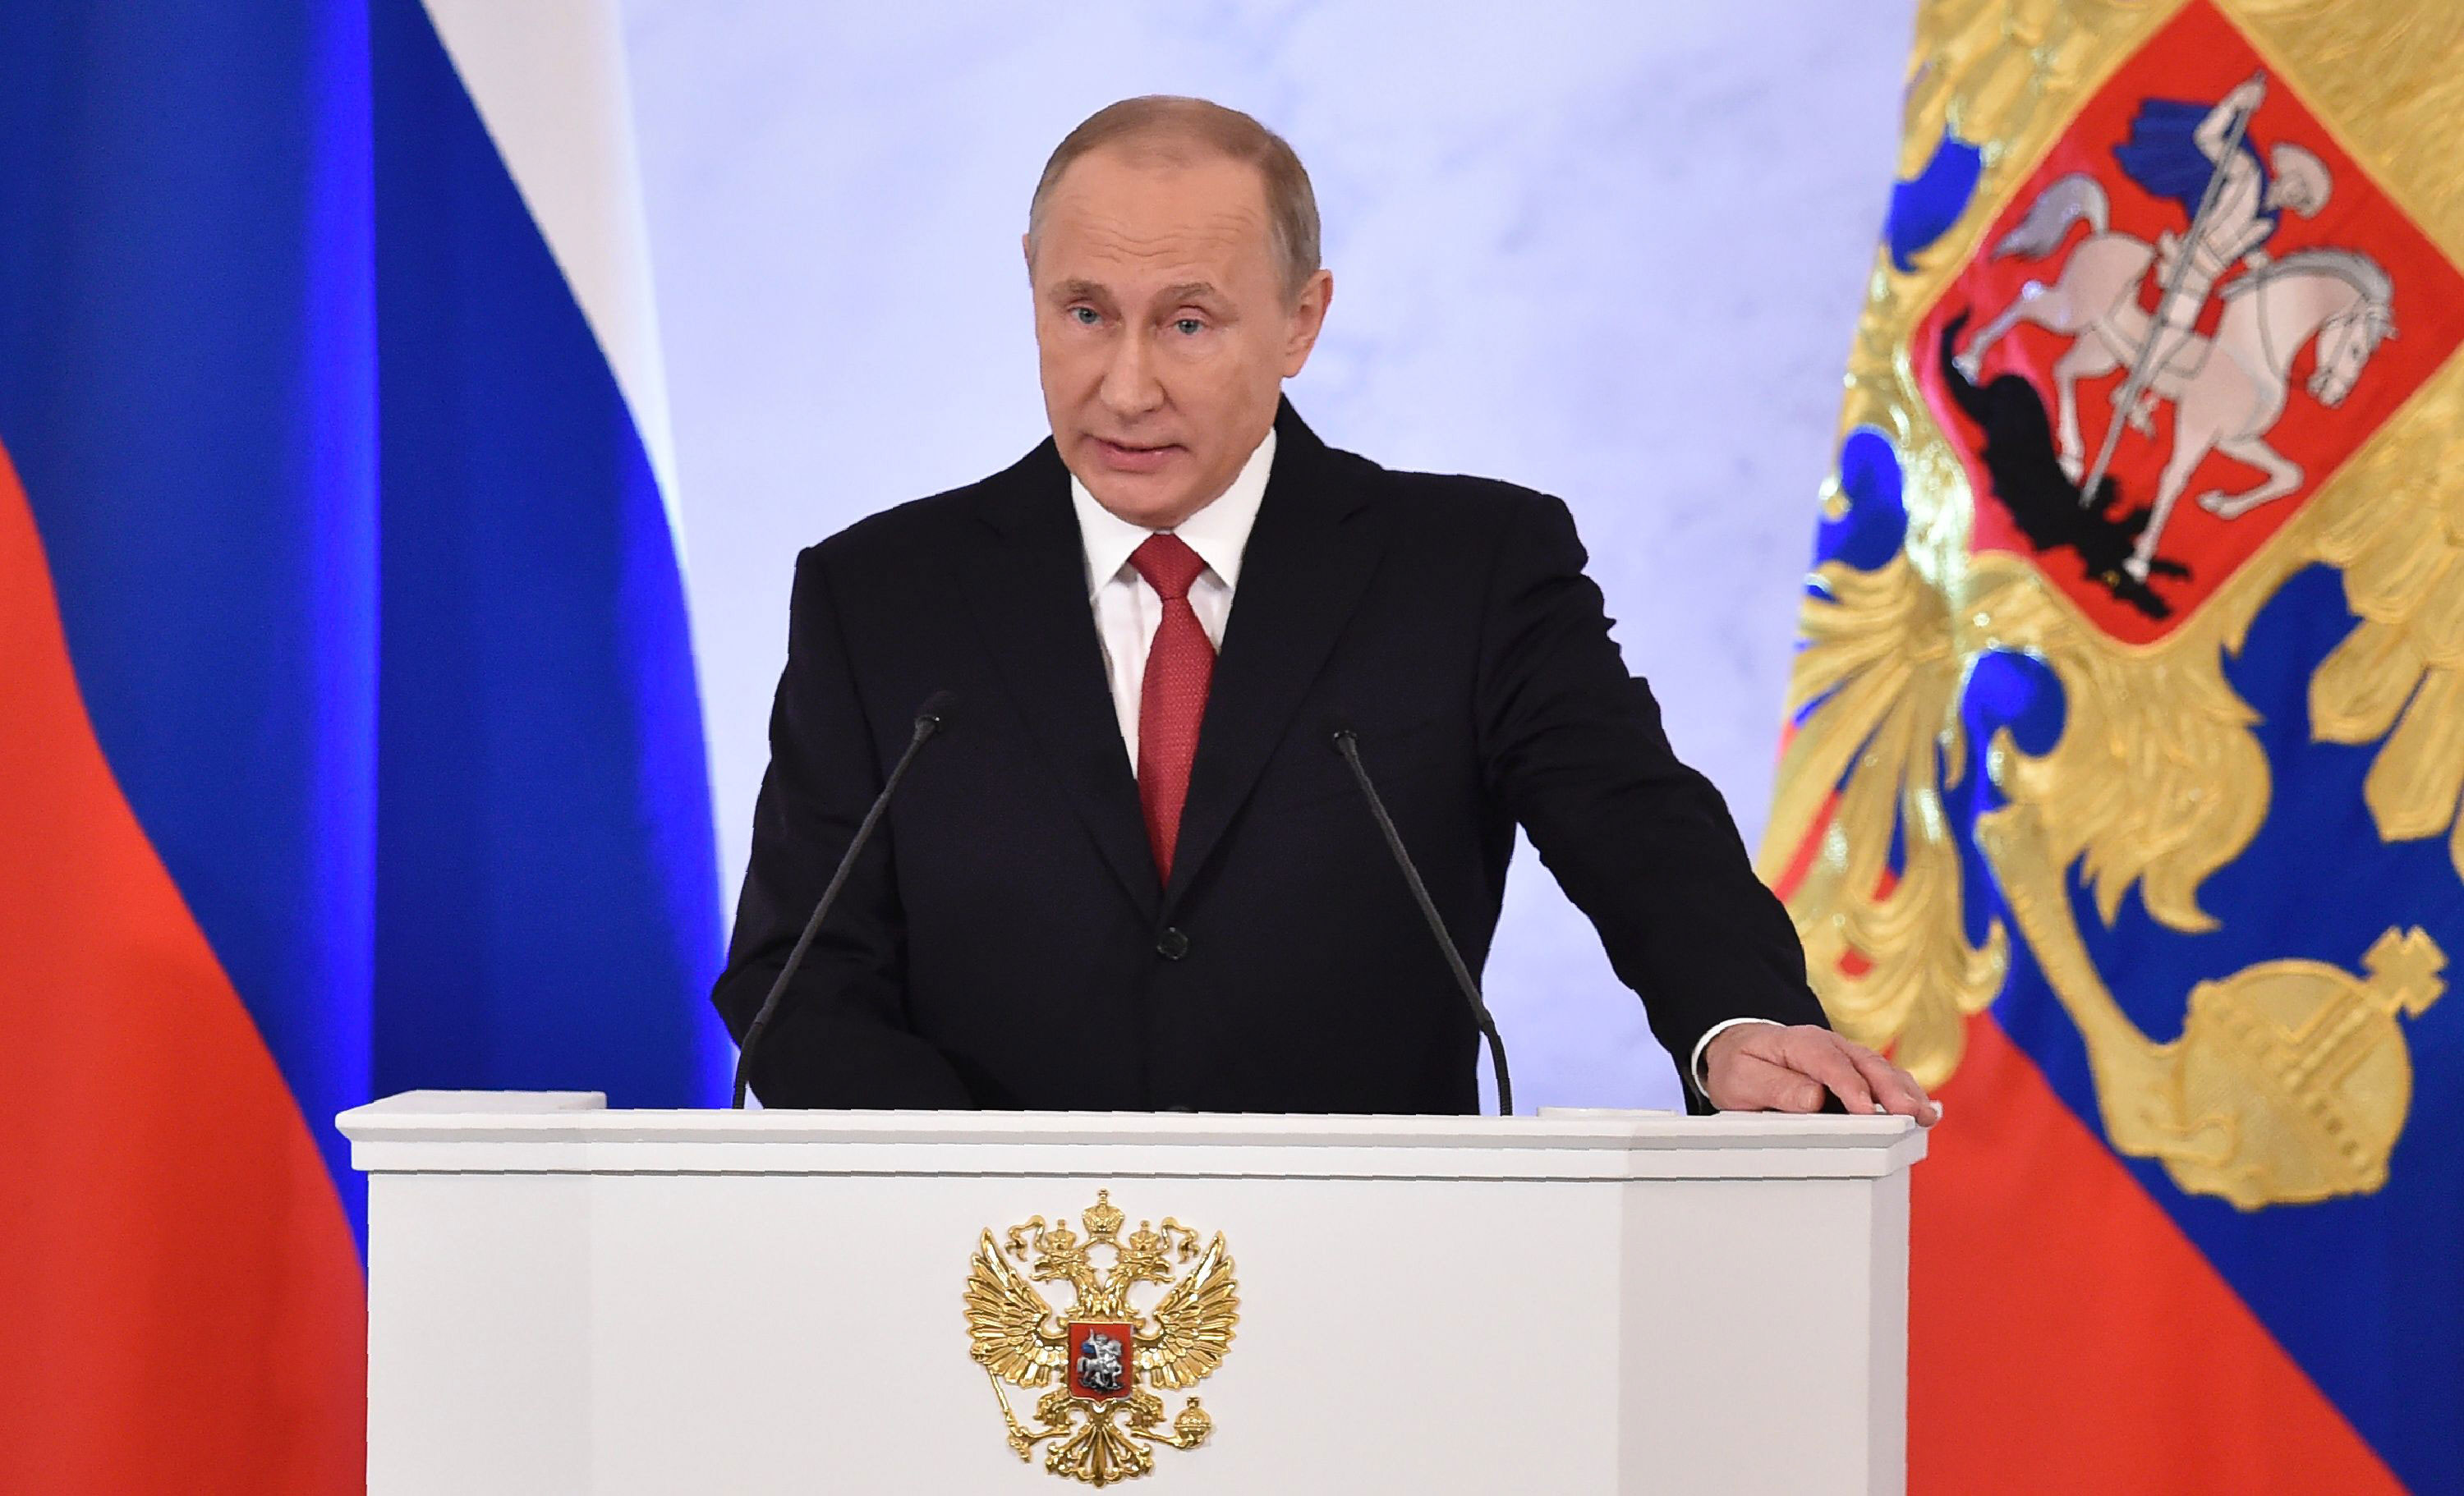 putin says russia not looking for enemies